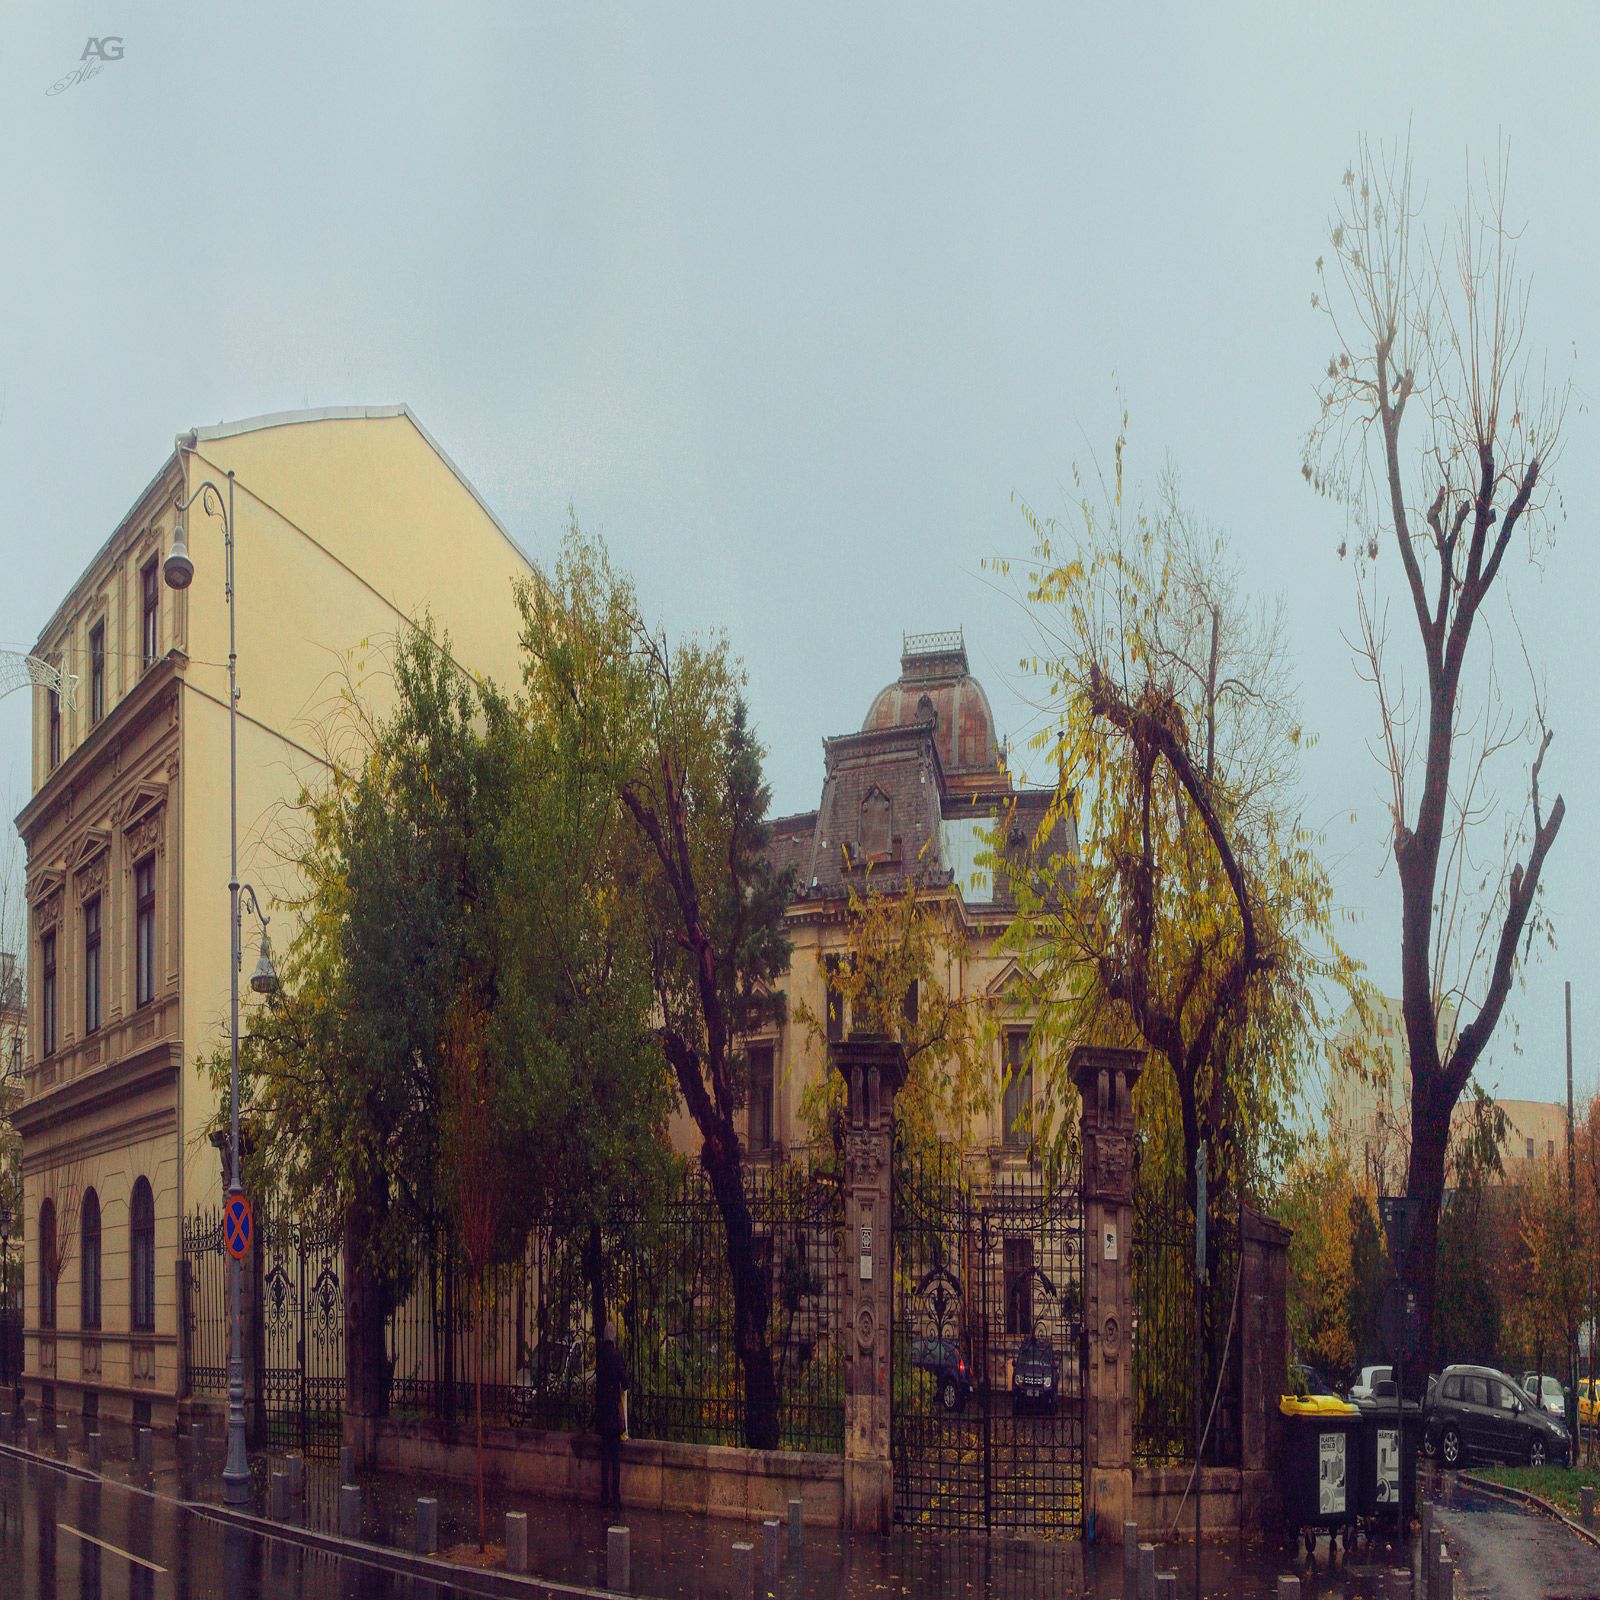 Romania_Bucharest_BuildingAndDryTreeRainyDay_squished_1600